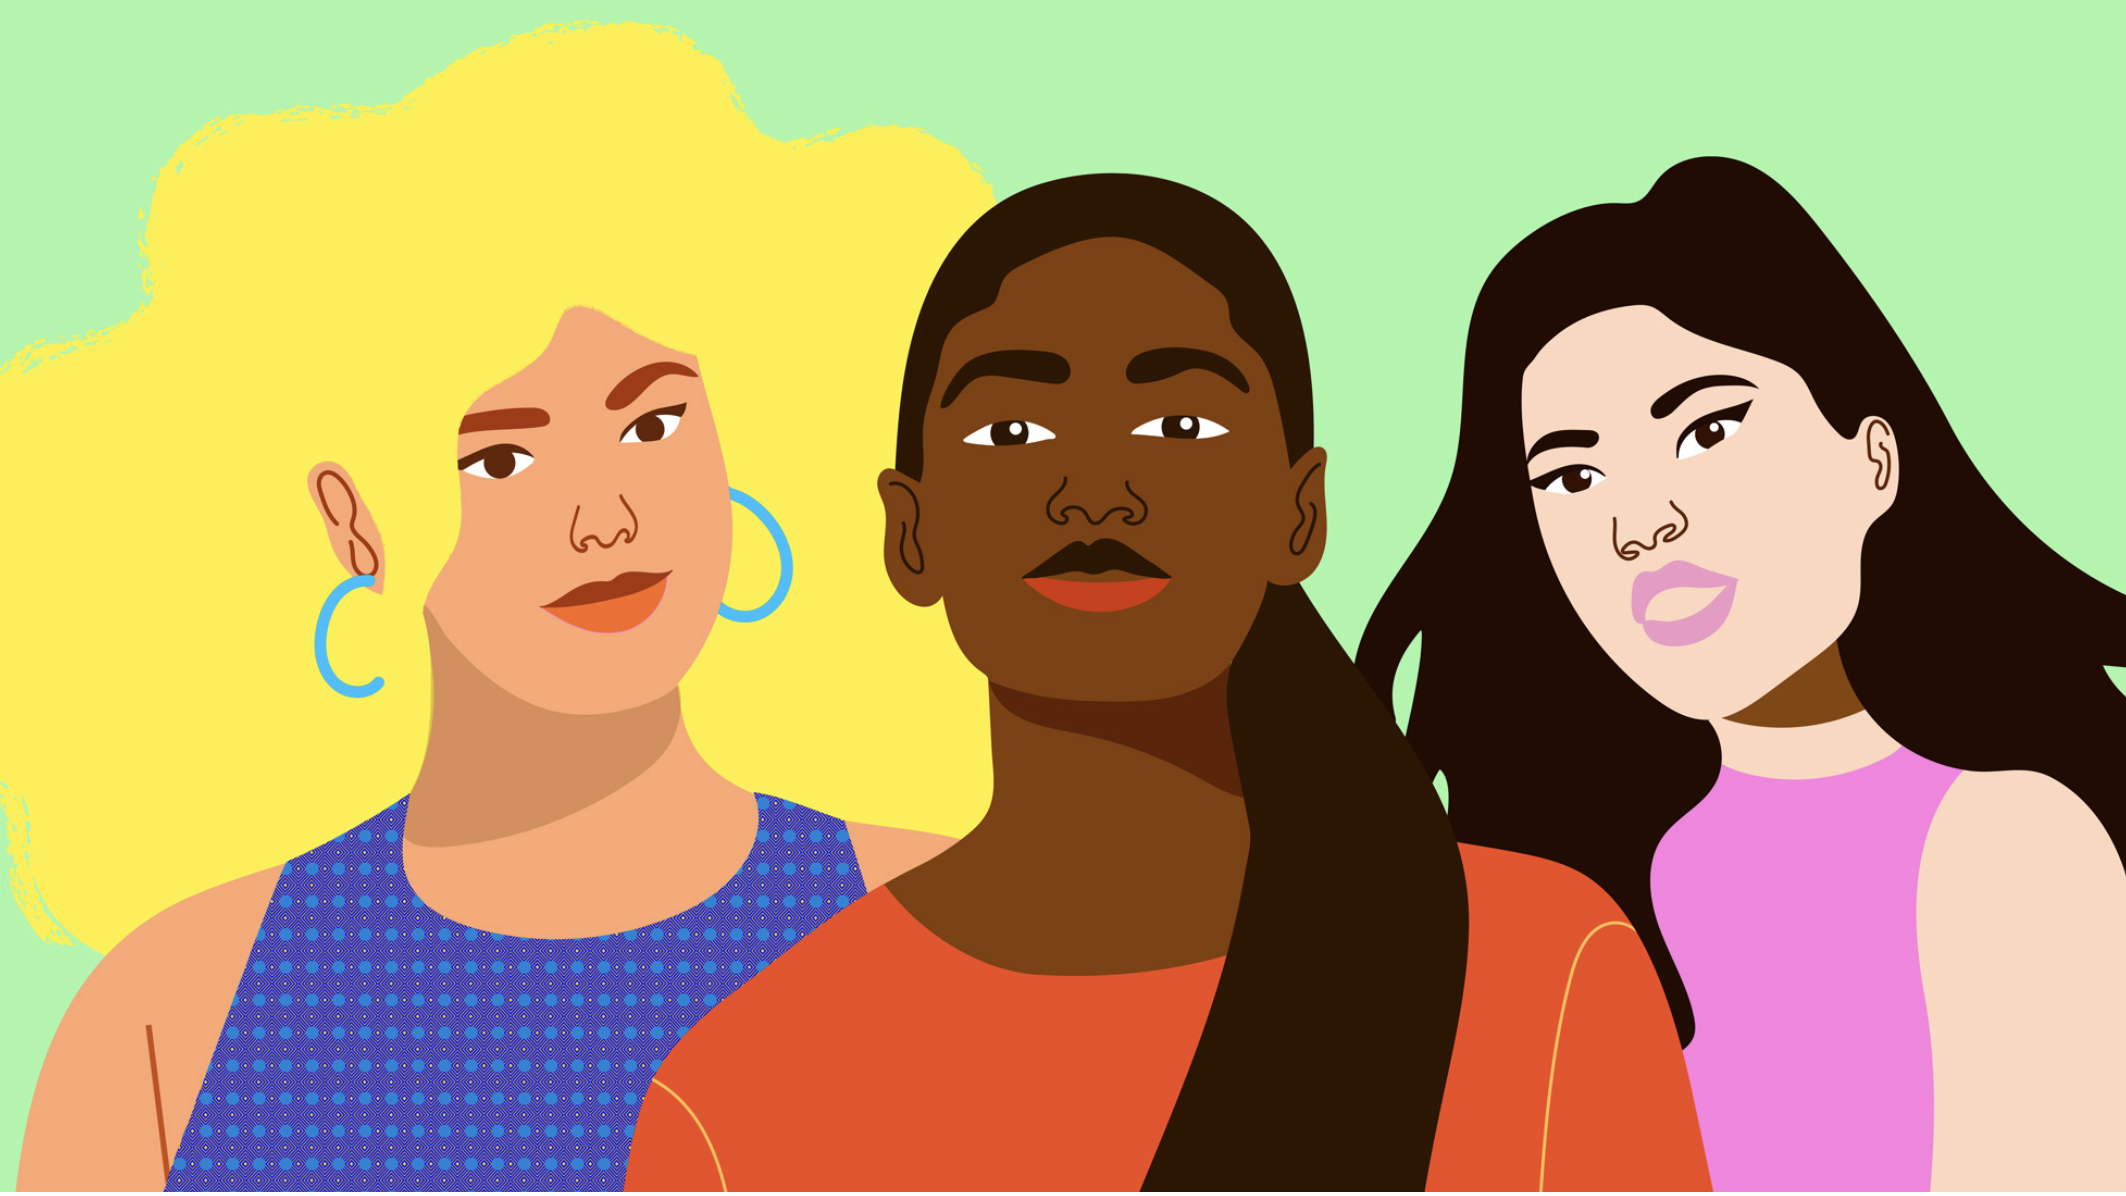 Apple Celebrates International Women's Day with a Special Today at Apple Series